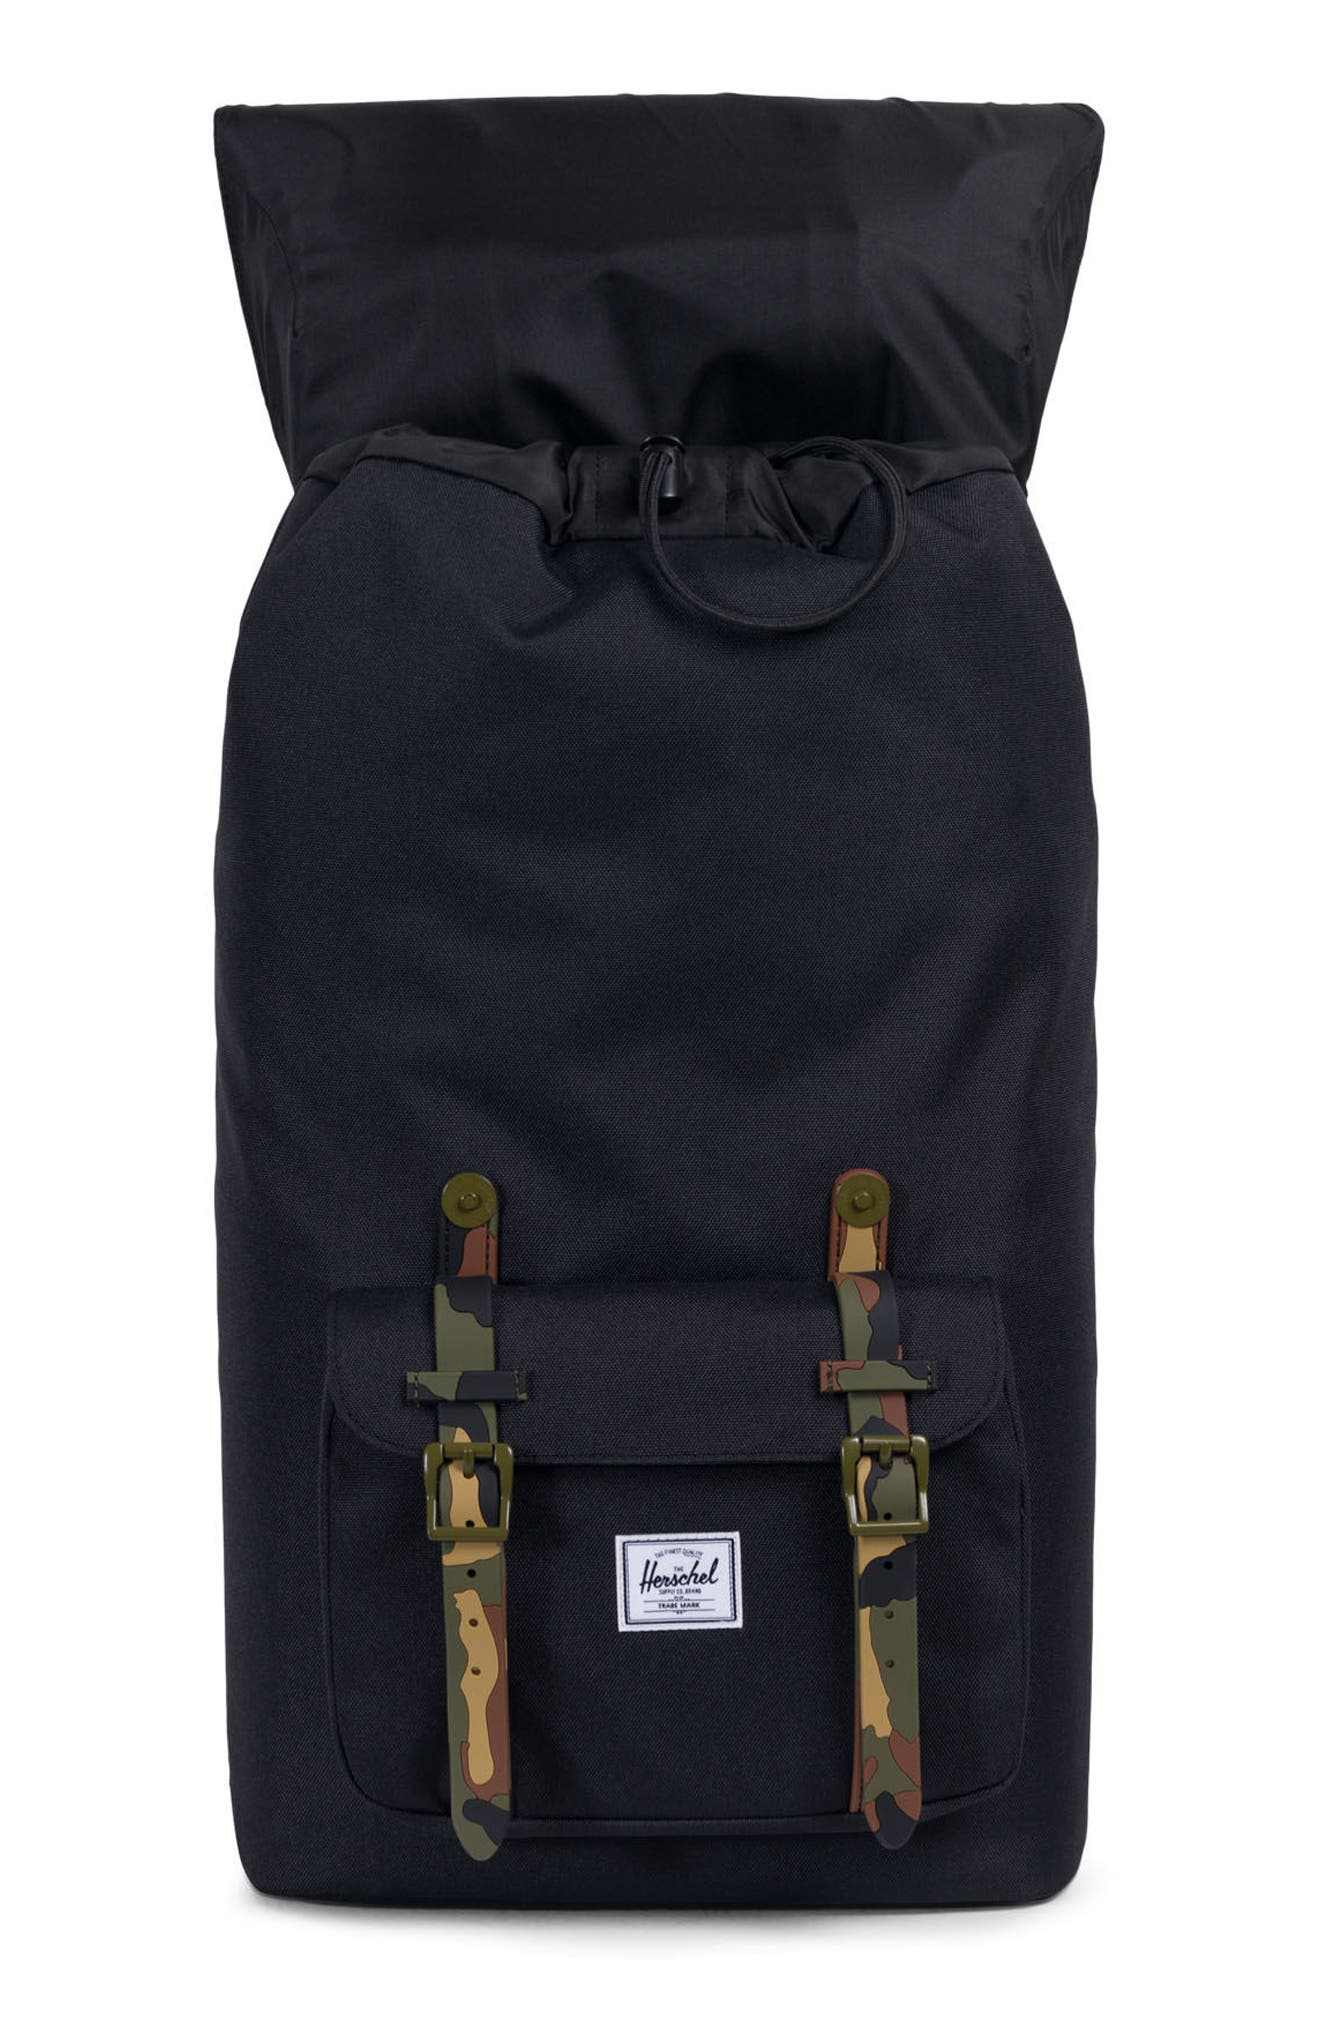 Little America Backpack,                             Alternate thumbnail 3, color,                             Black/ Woodland Camo Rubber